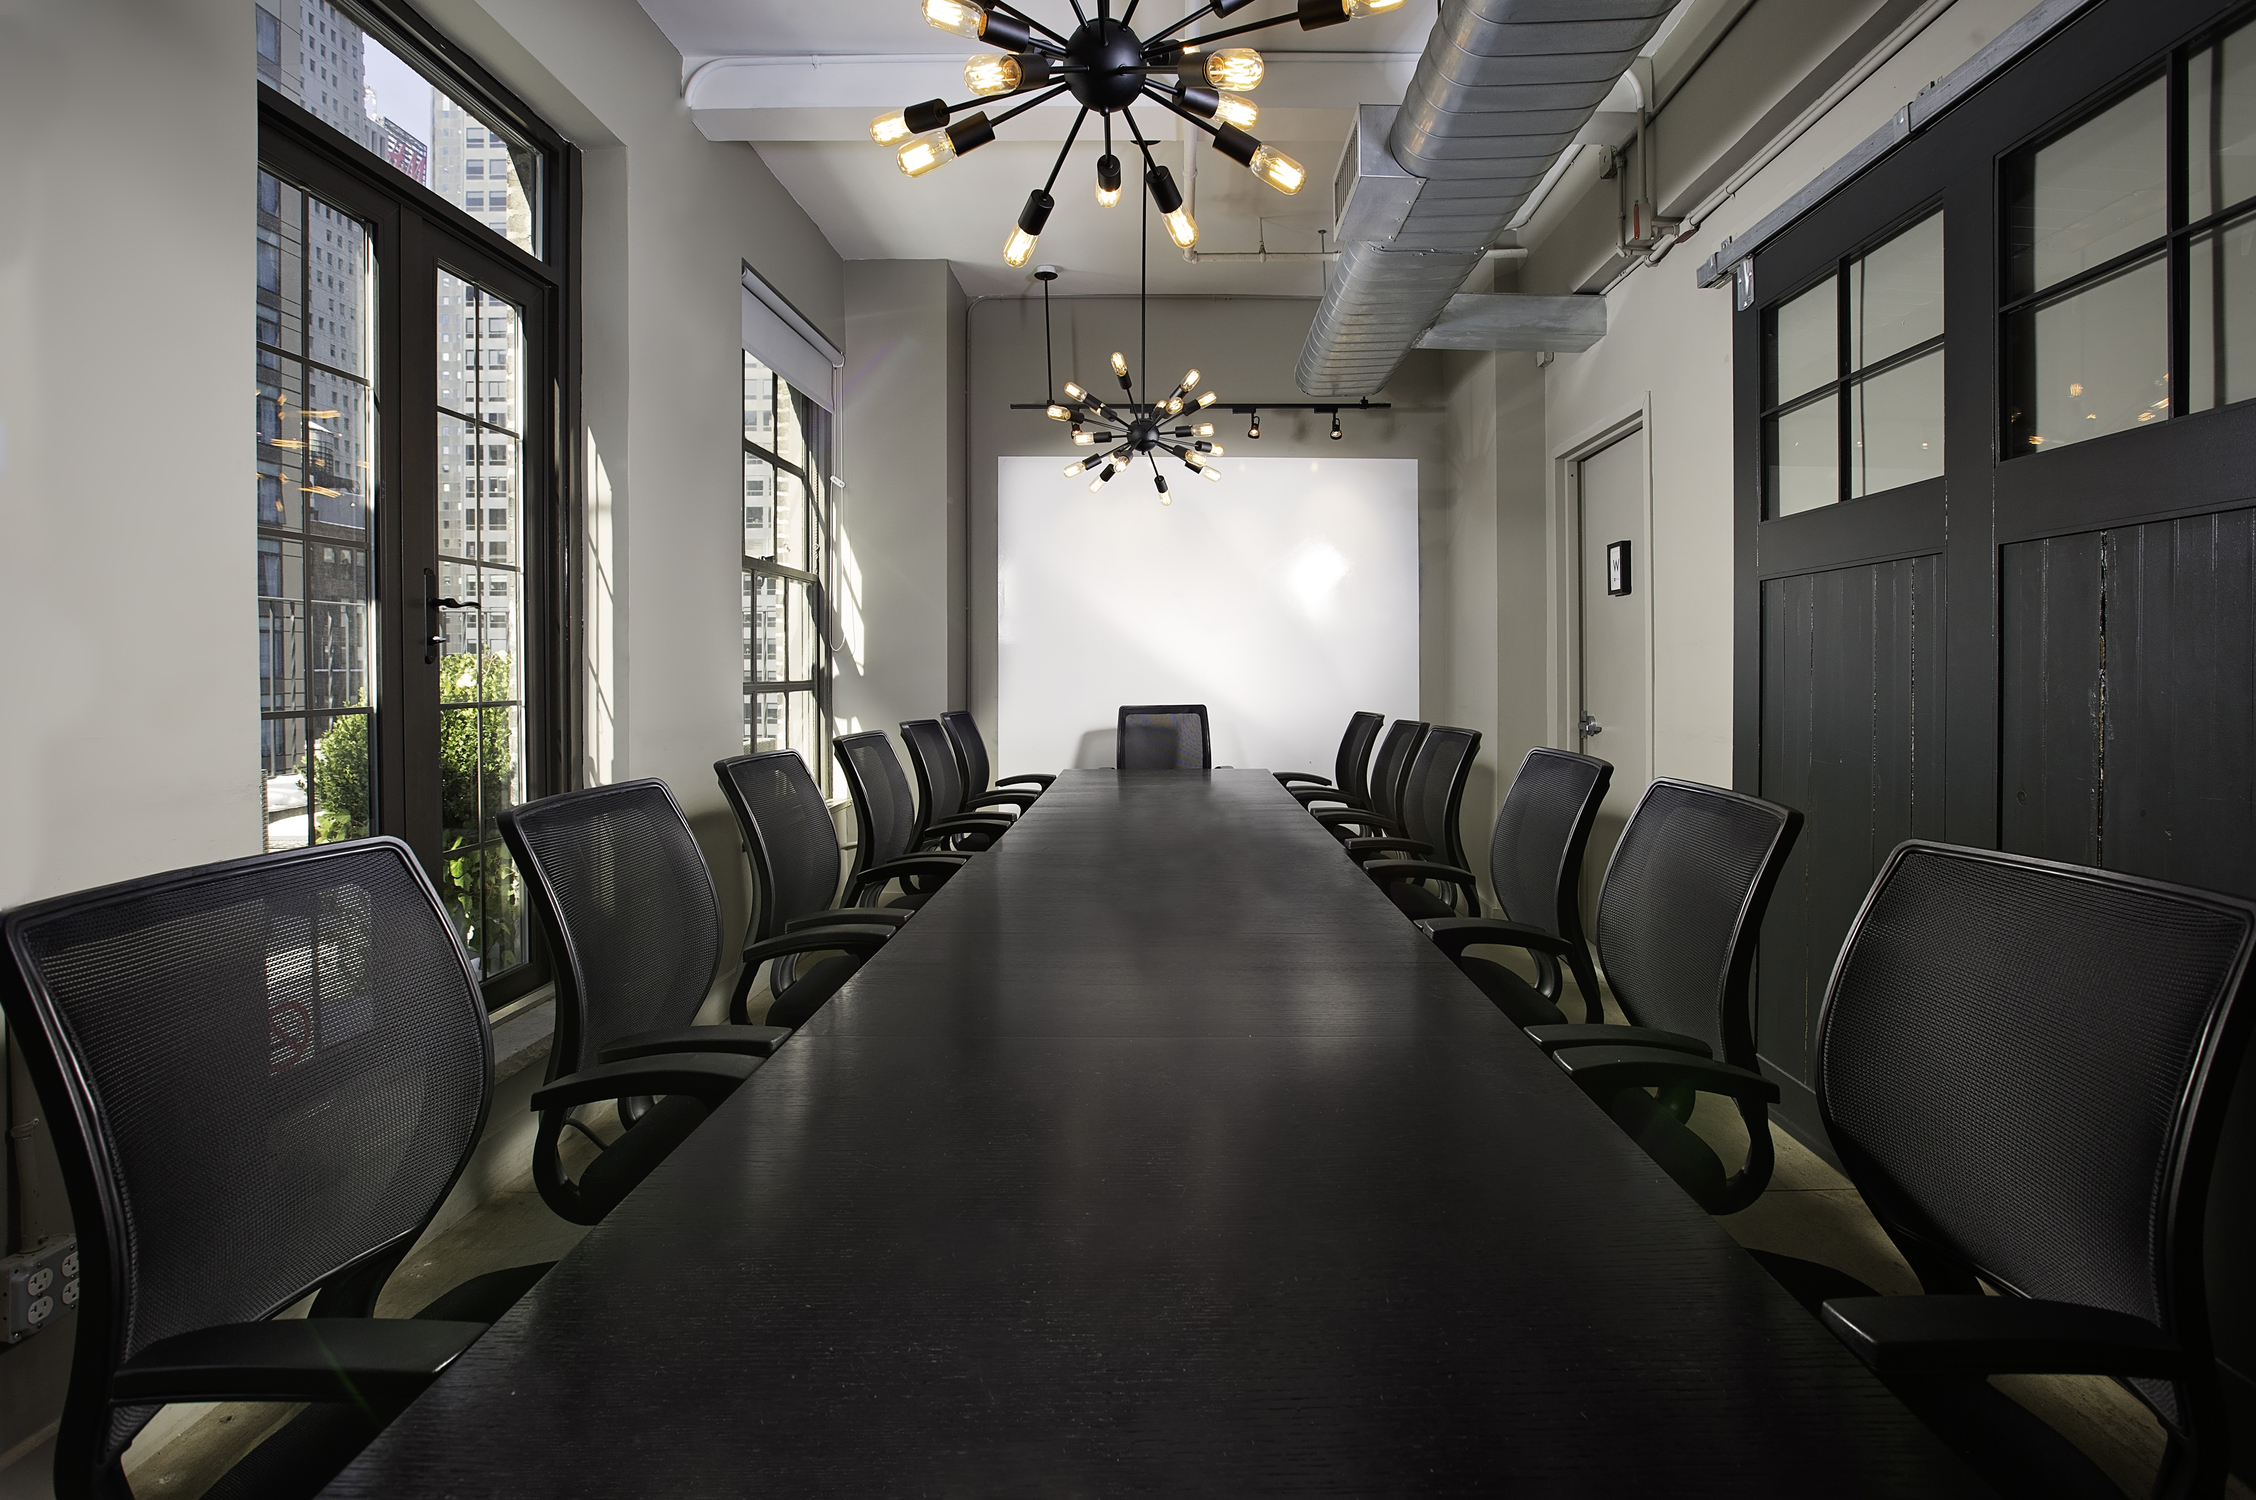 Large black conference room table adjacent to outdoor terrace space